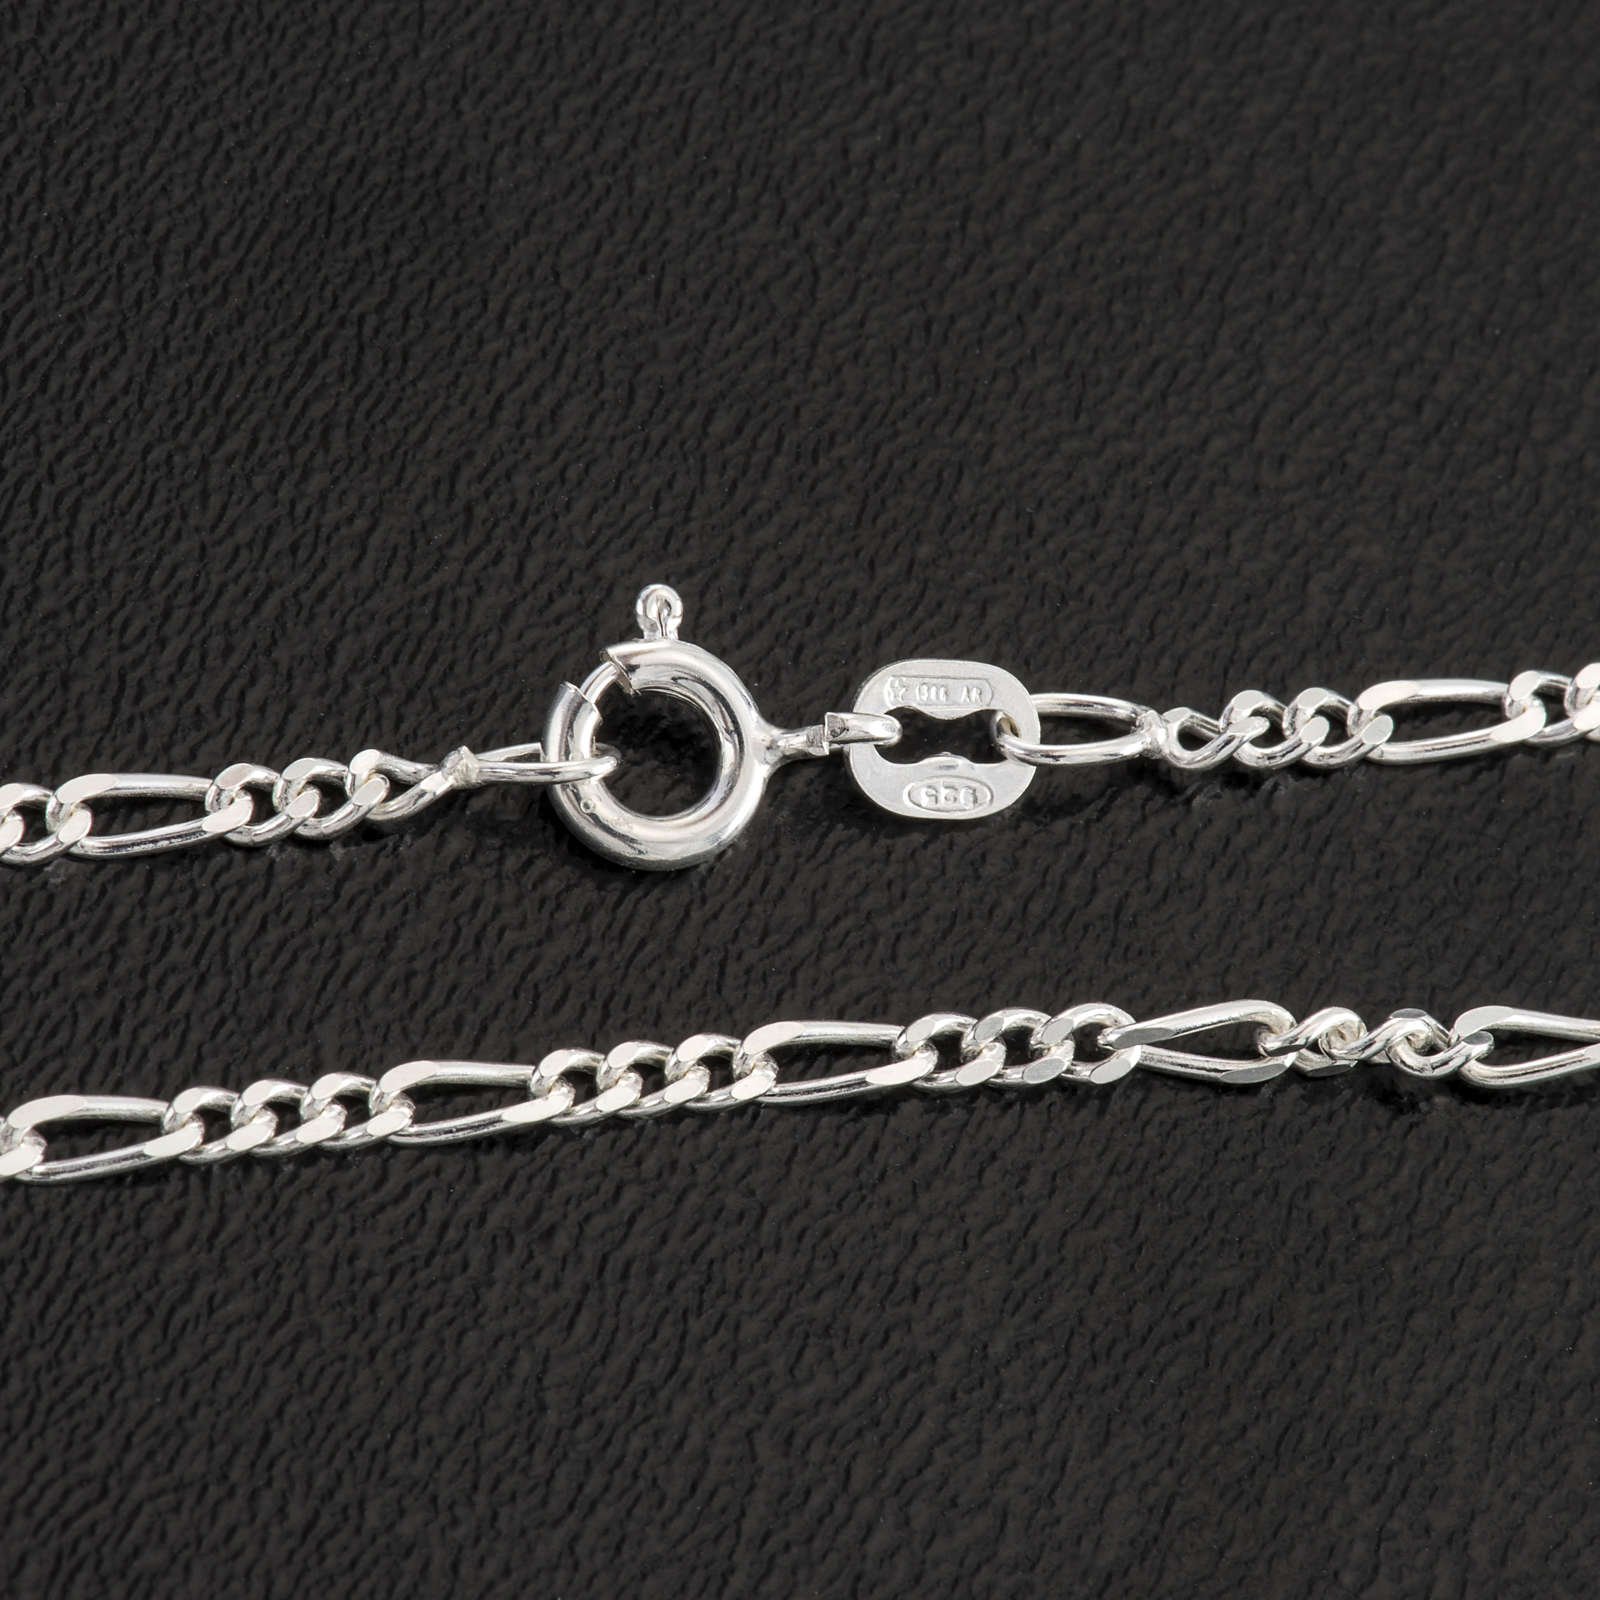 Collier argent 925 maille figaro - long. 50 cm 4